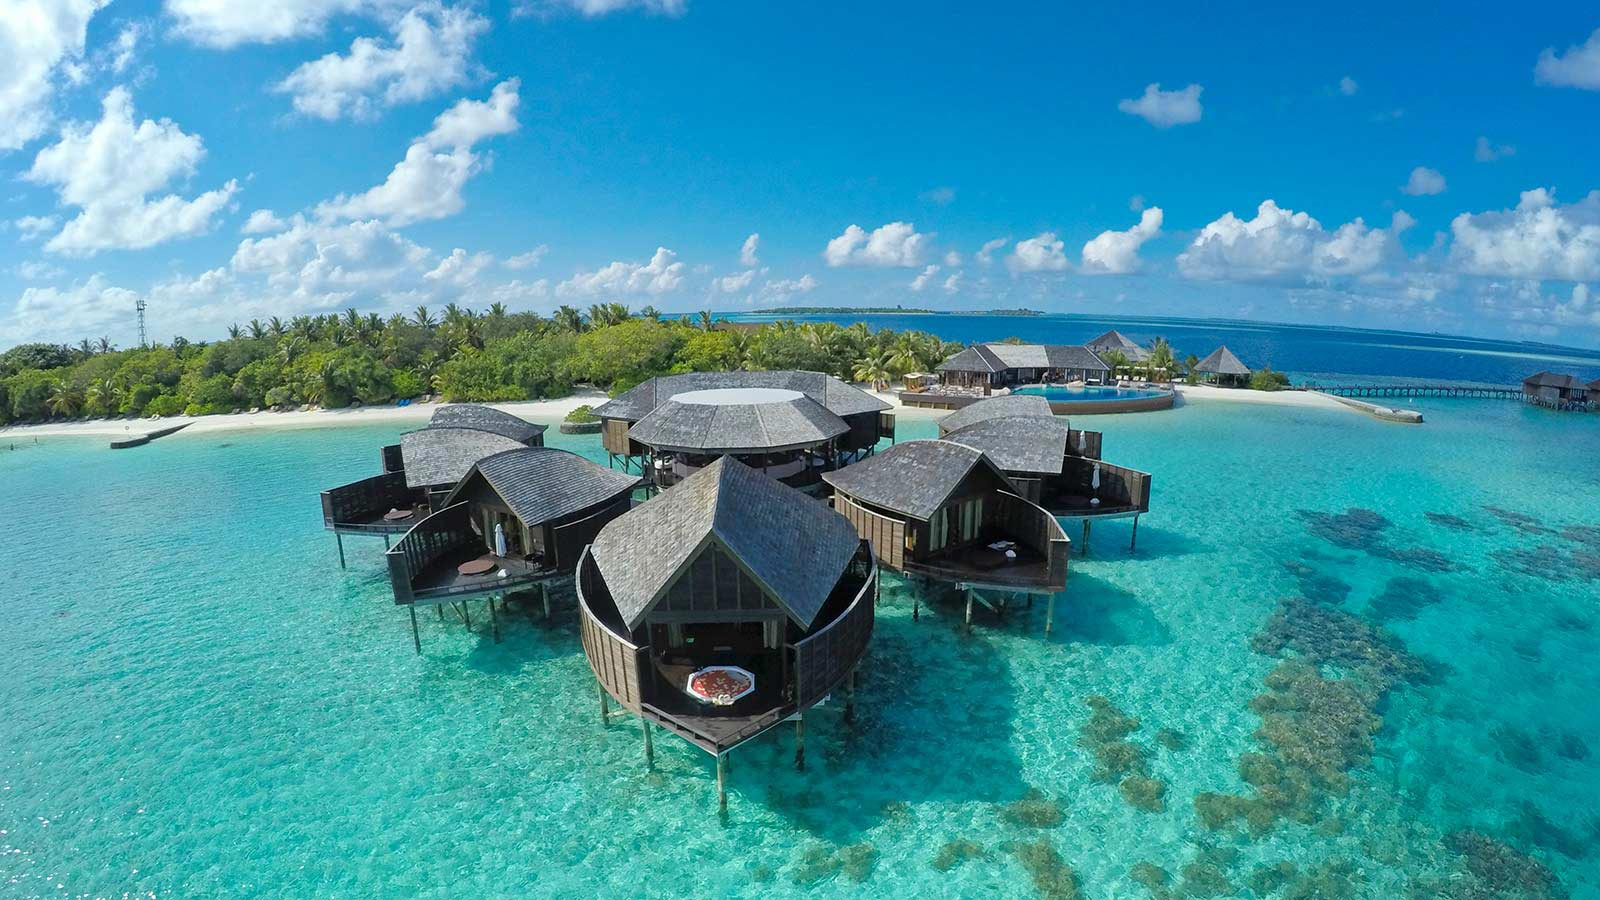 Maldives Spa Resort Lily Beach